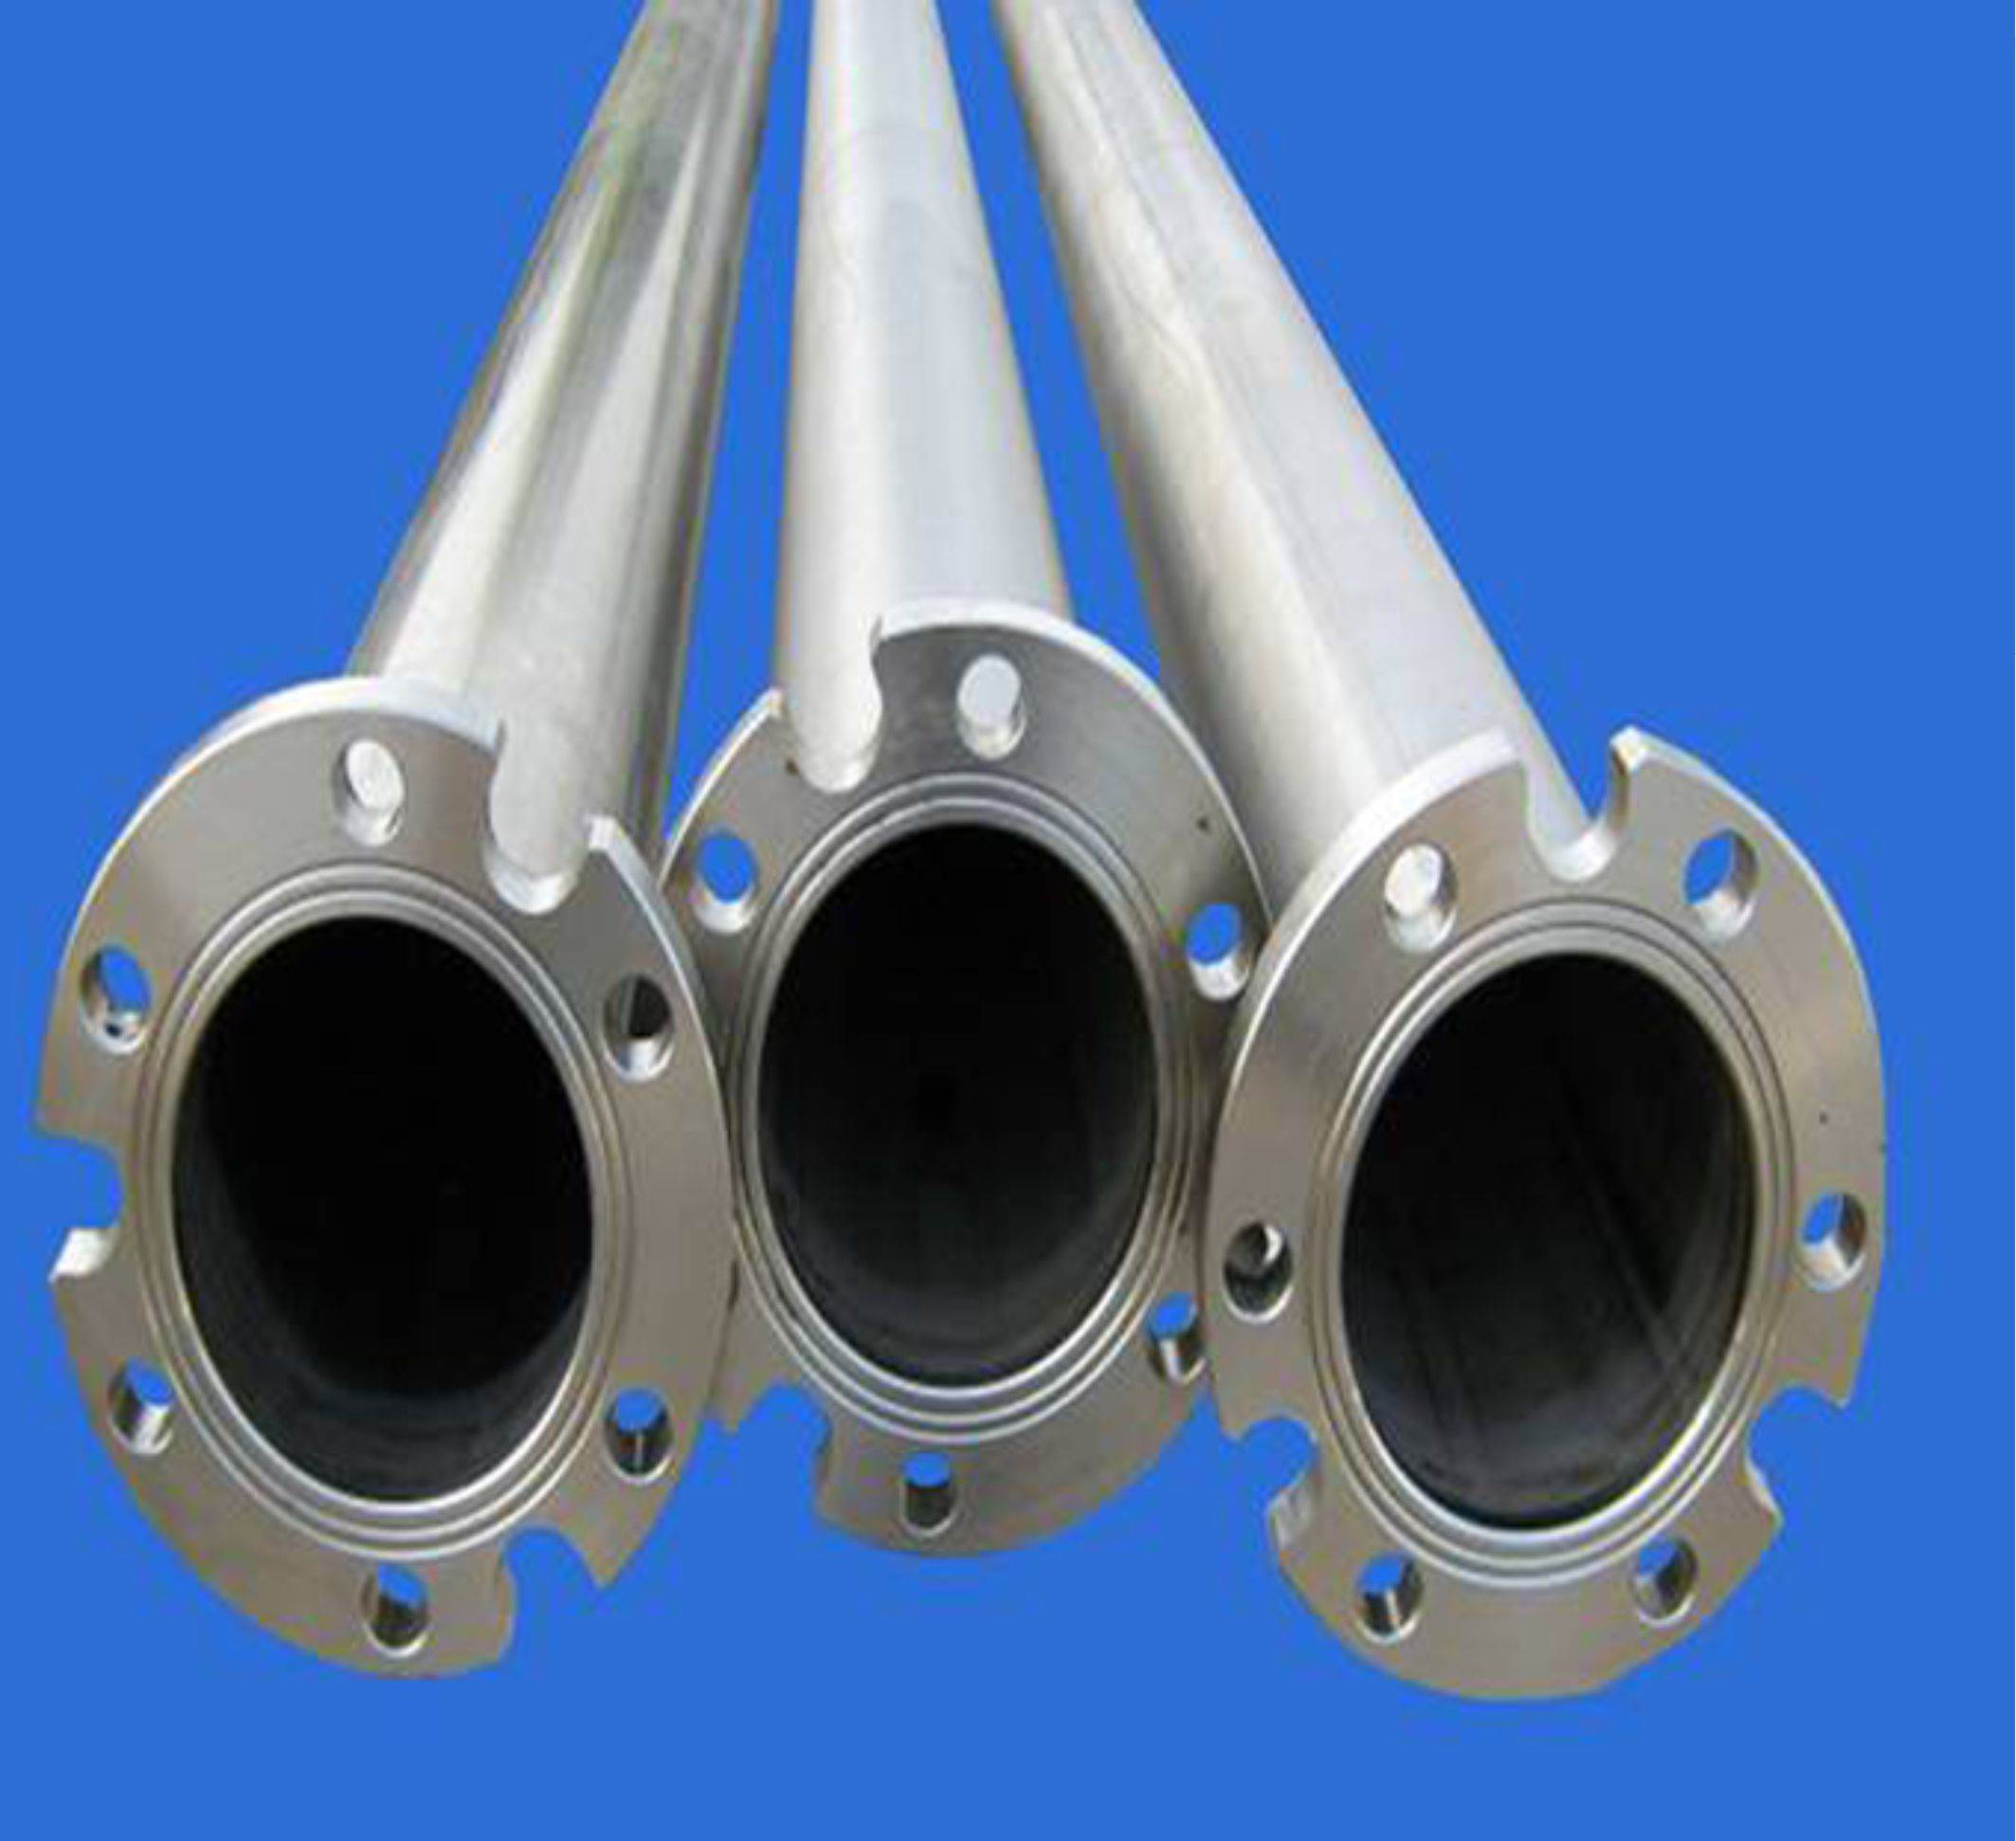 Rizer pipe manufacturer and supplier